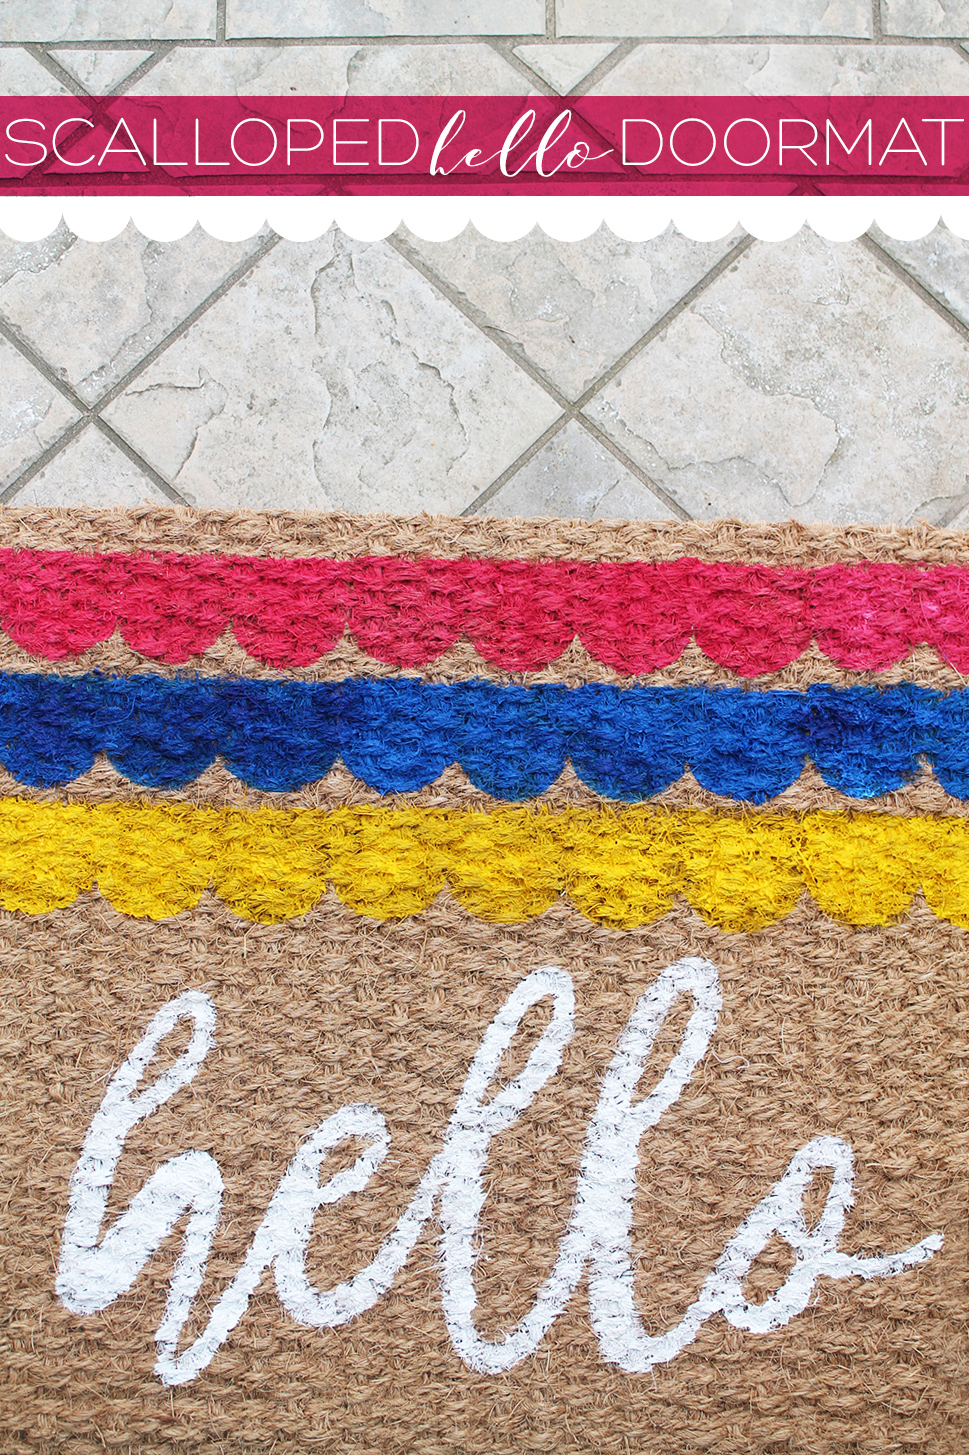 Greet your guests with this sweet scalloped 'hello' doormat. Grab the DIY and silhouette stencil downloads here at Squirrelly Minds